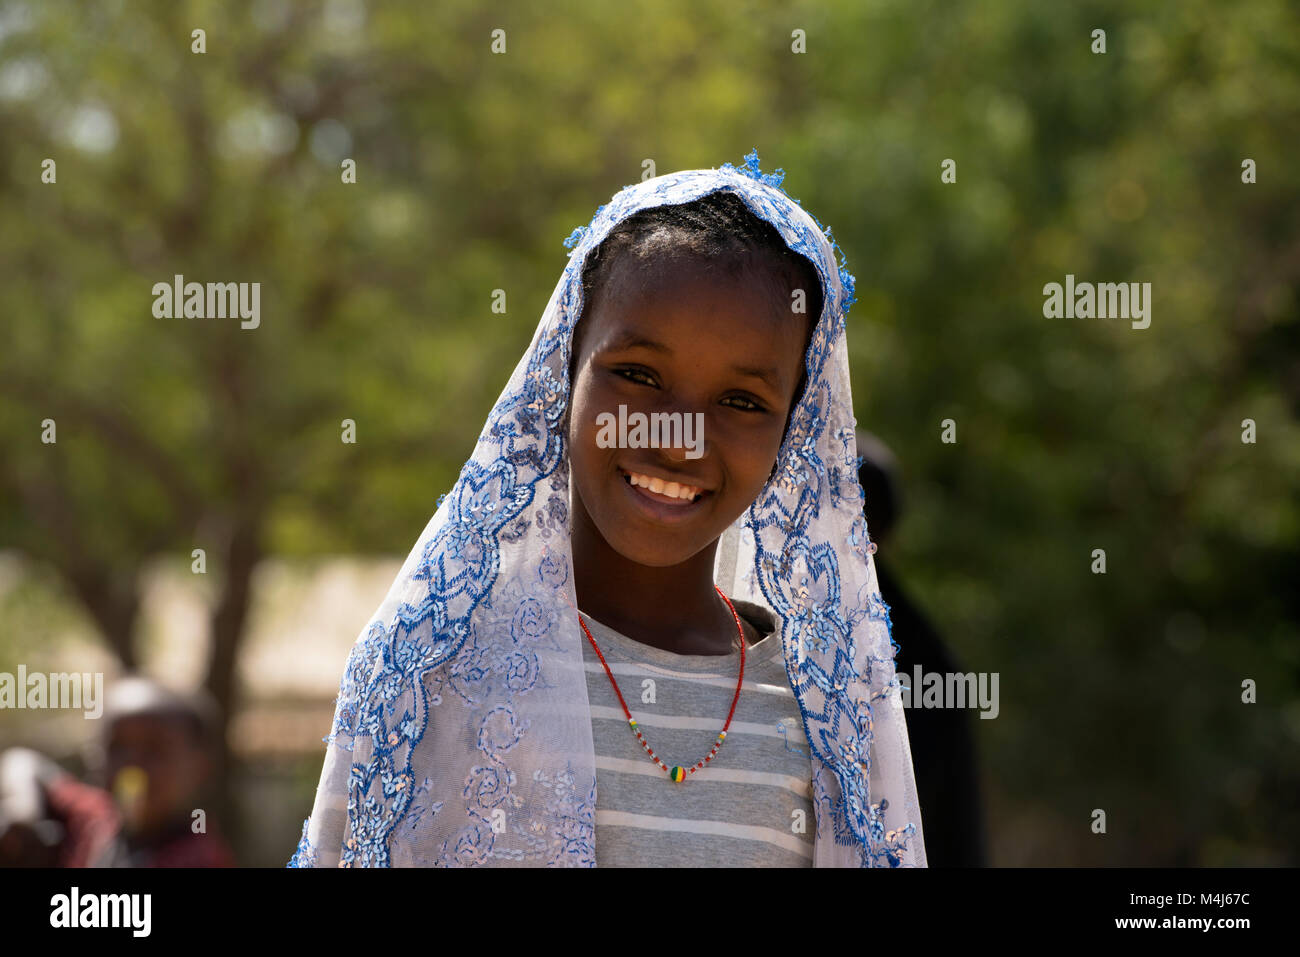 A young Mandinka (Mandingo) girl in her village in The Gambia, West Africa. - Stock Image